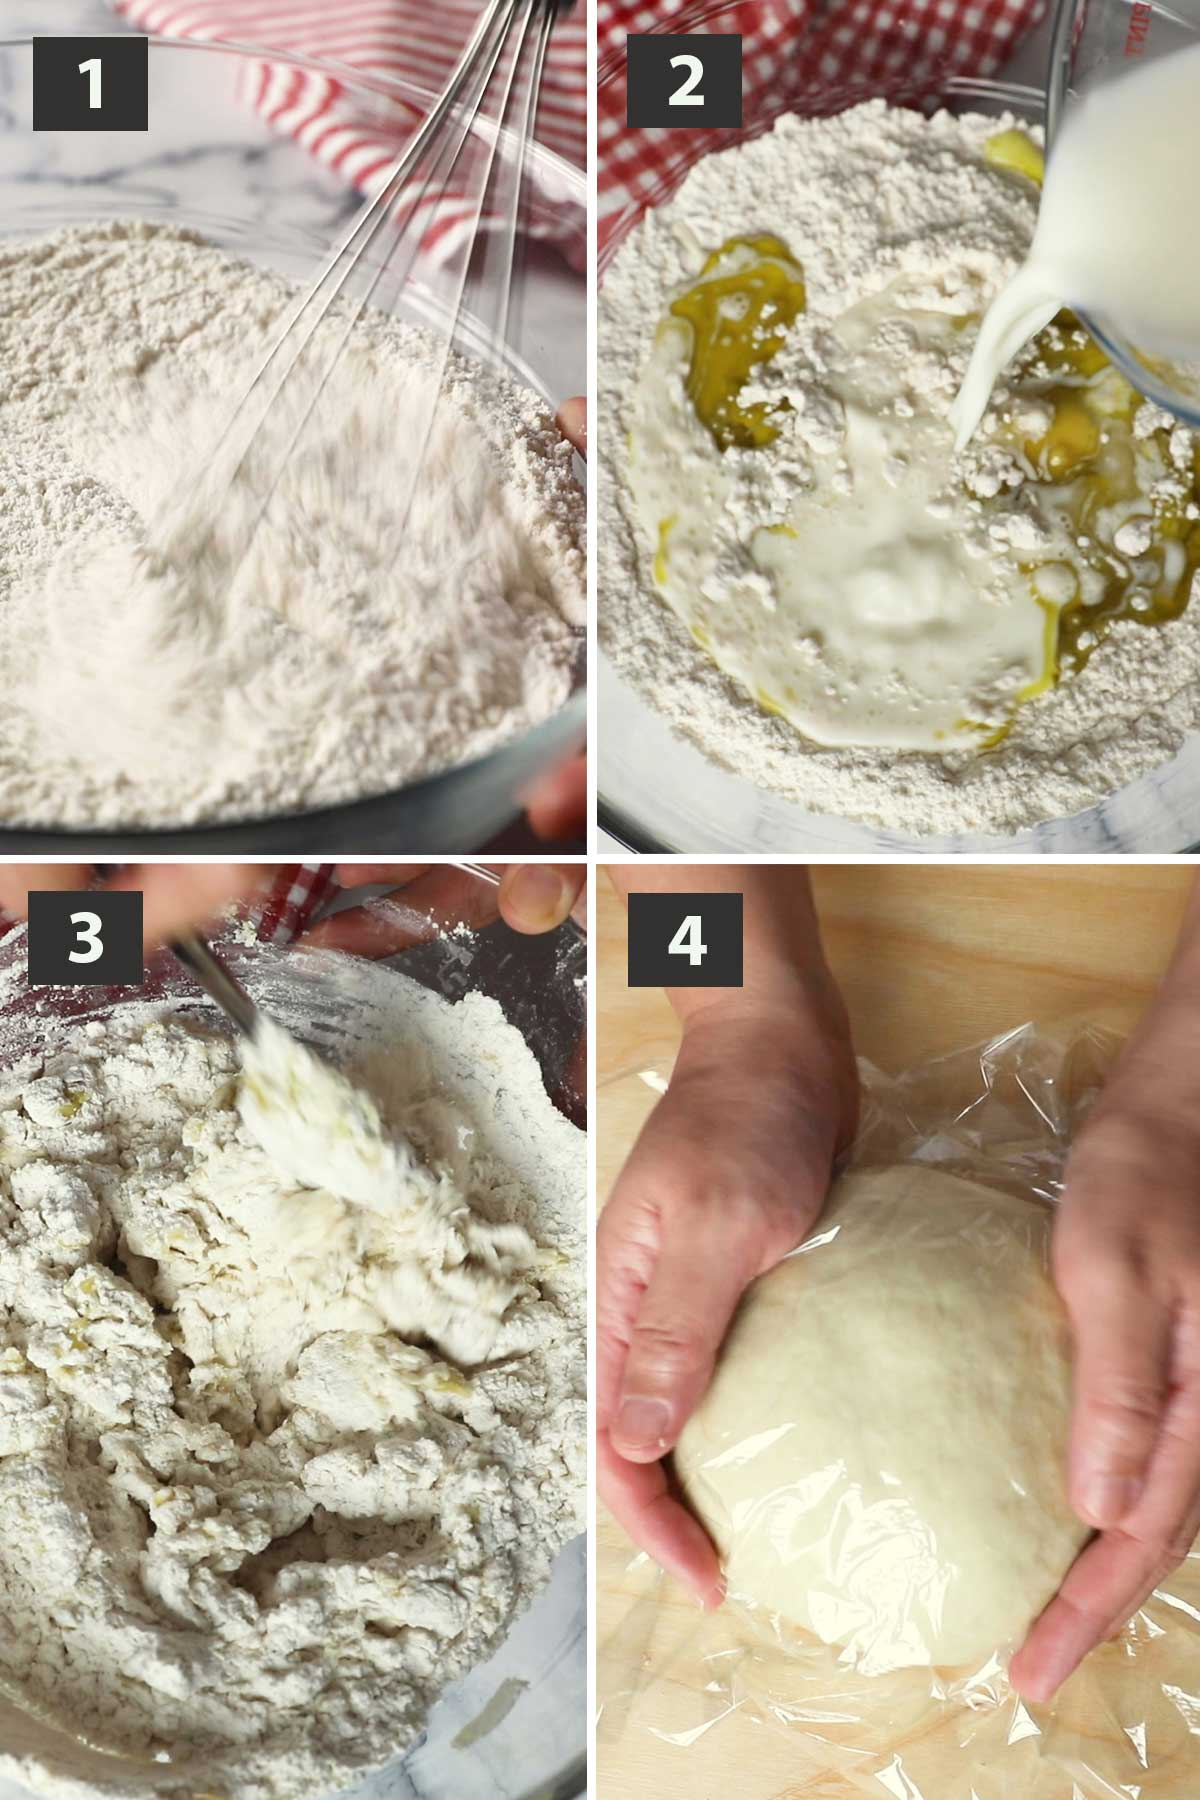 First part of a collage of images showing the step by step process on how to make Italian Flatbread.